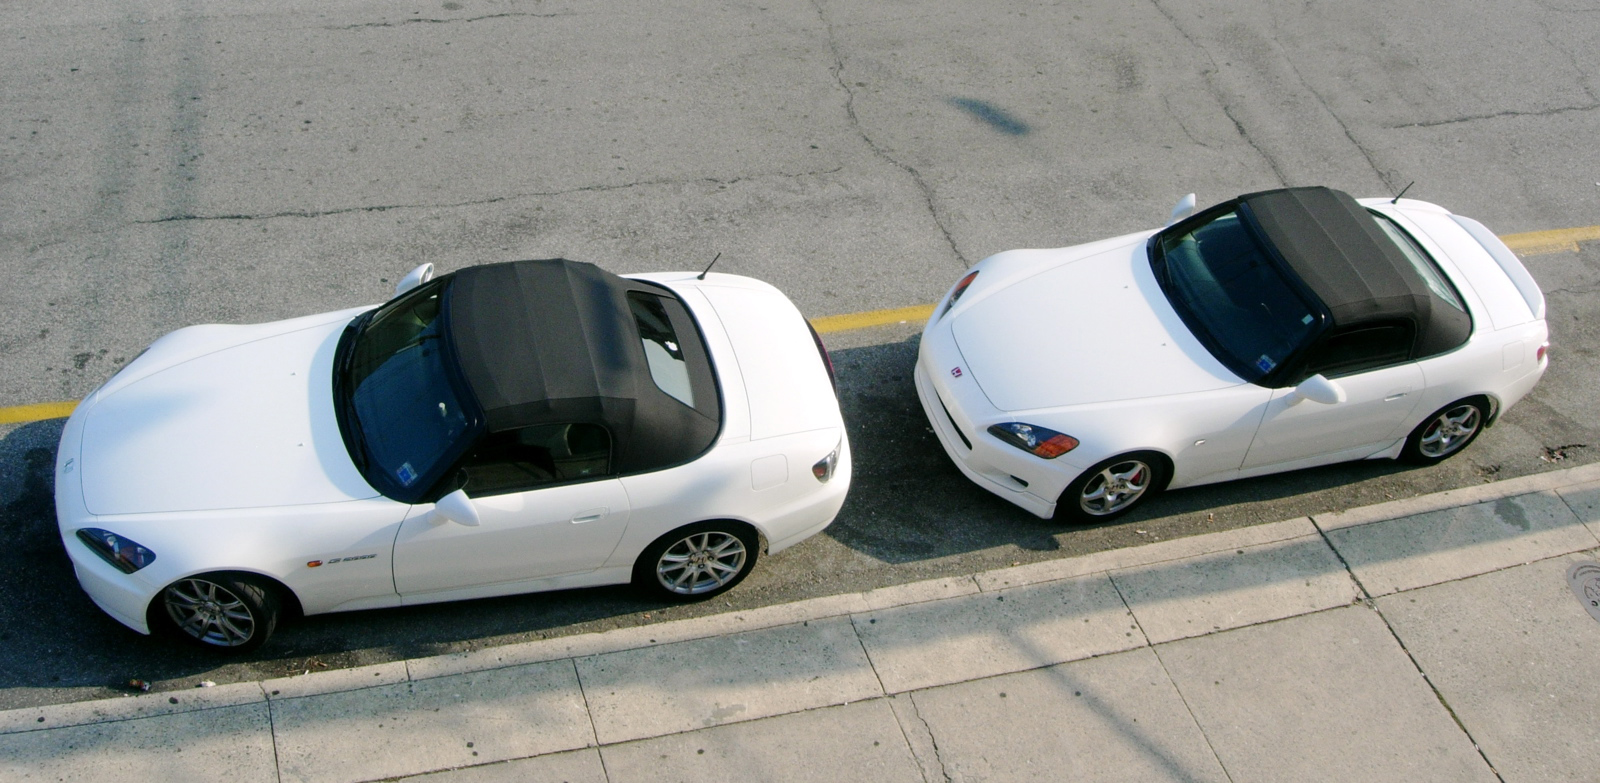 Ap1 Vs Ap2 >> File S2000 Ap1 Ap2 Top View Jpg Wikimedia Commons